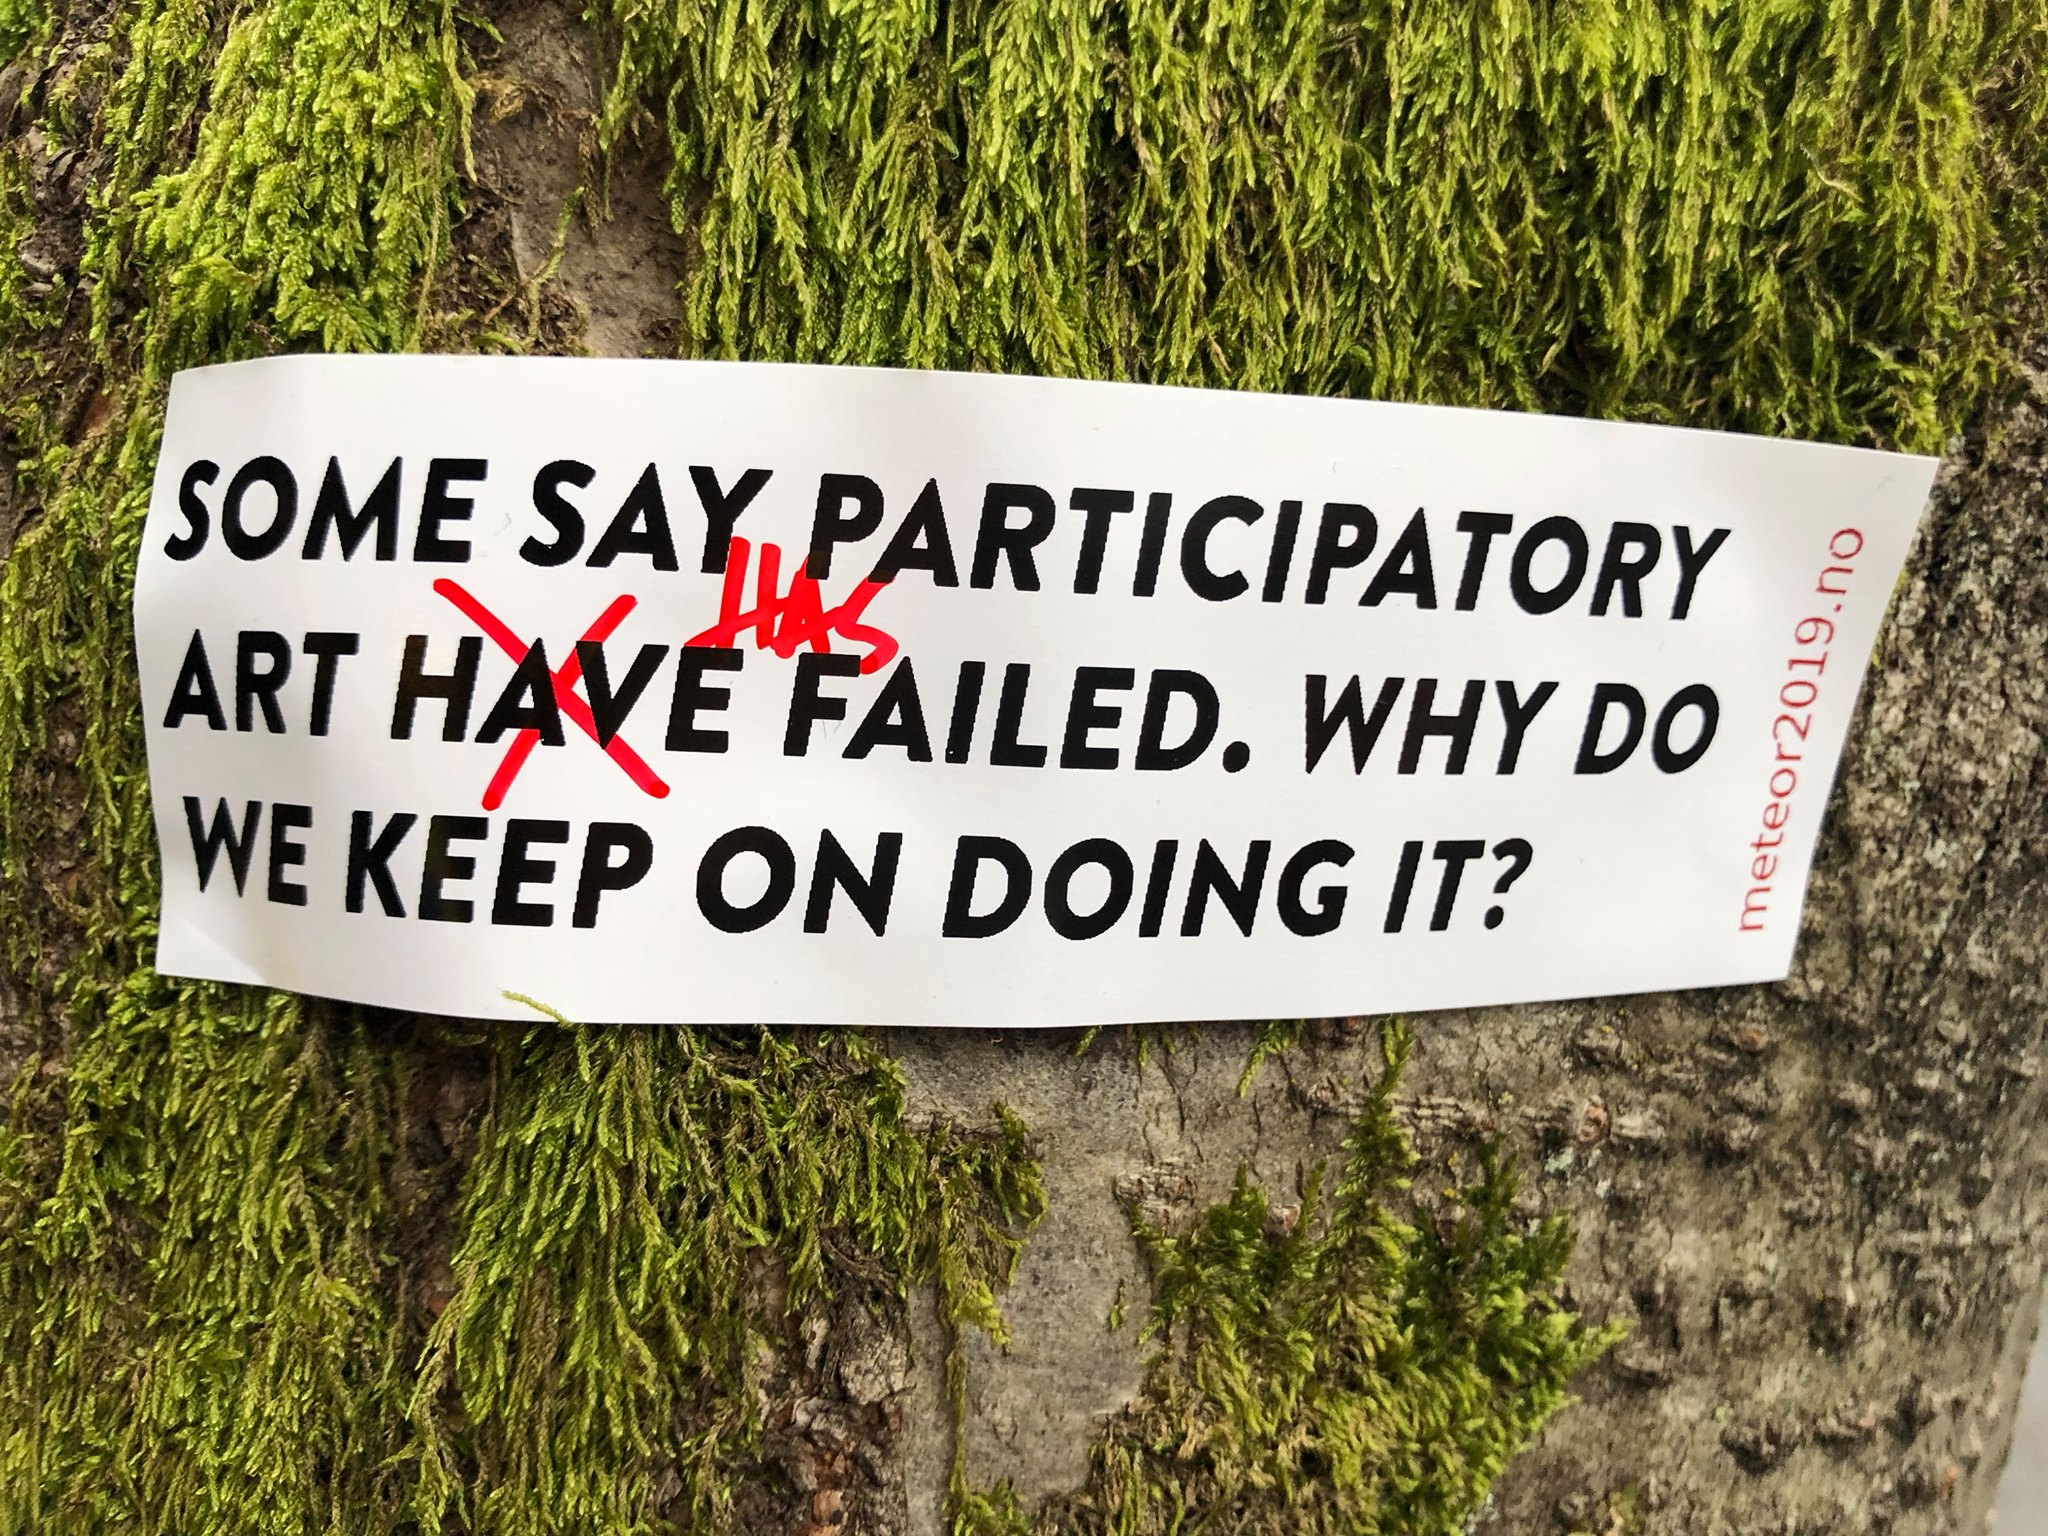 SOME SAY PARTICIPATORY ART HAS FAILED. WHY DO WE KEEP ON DOING IT?